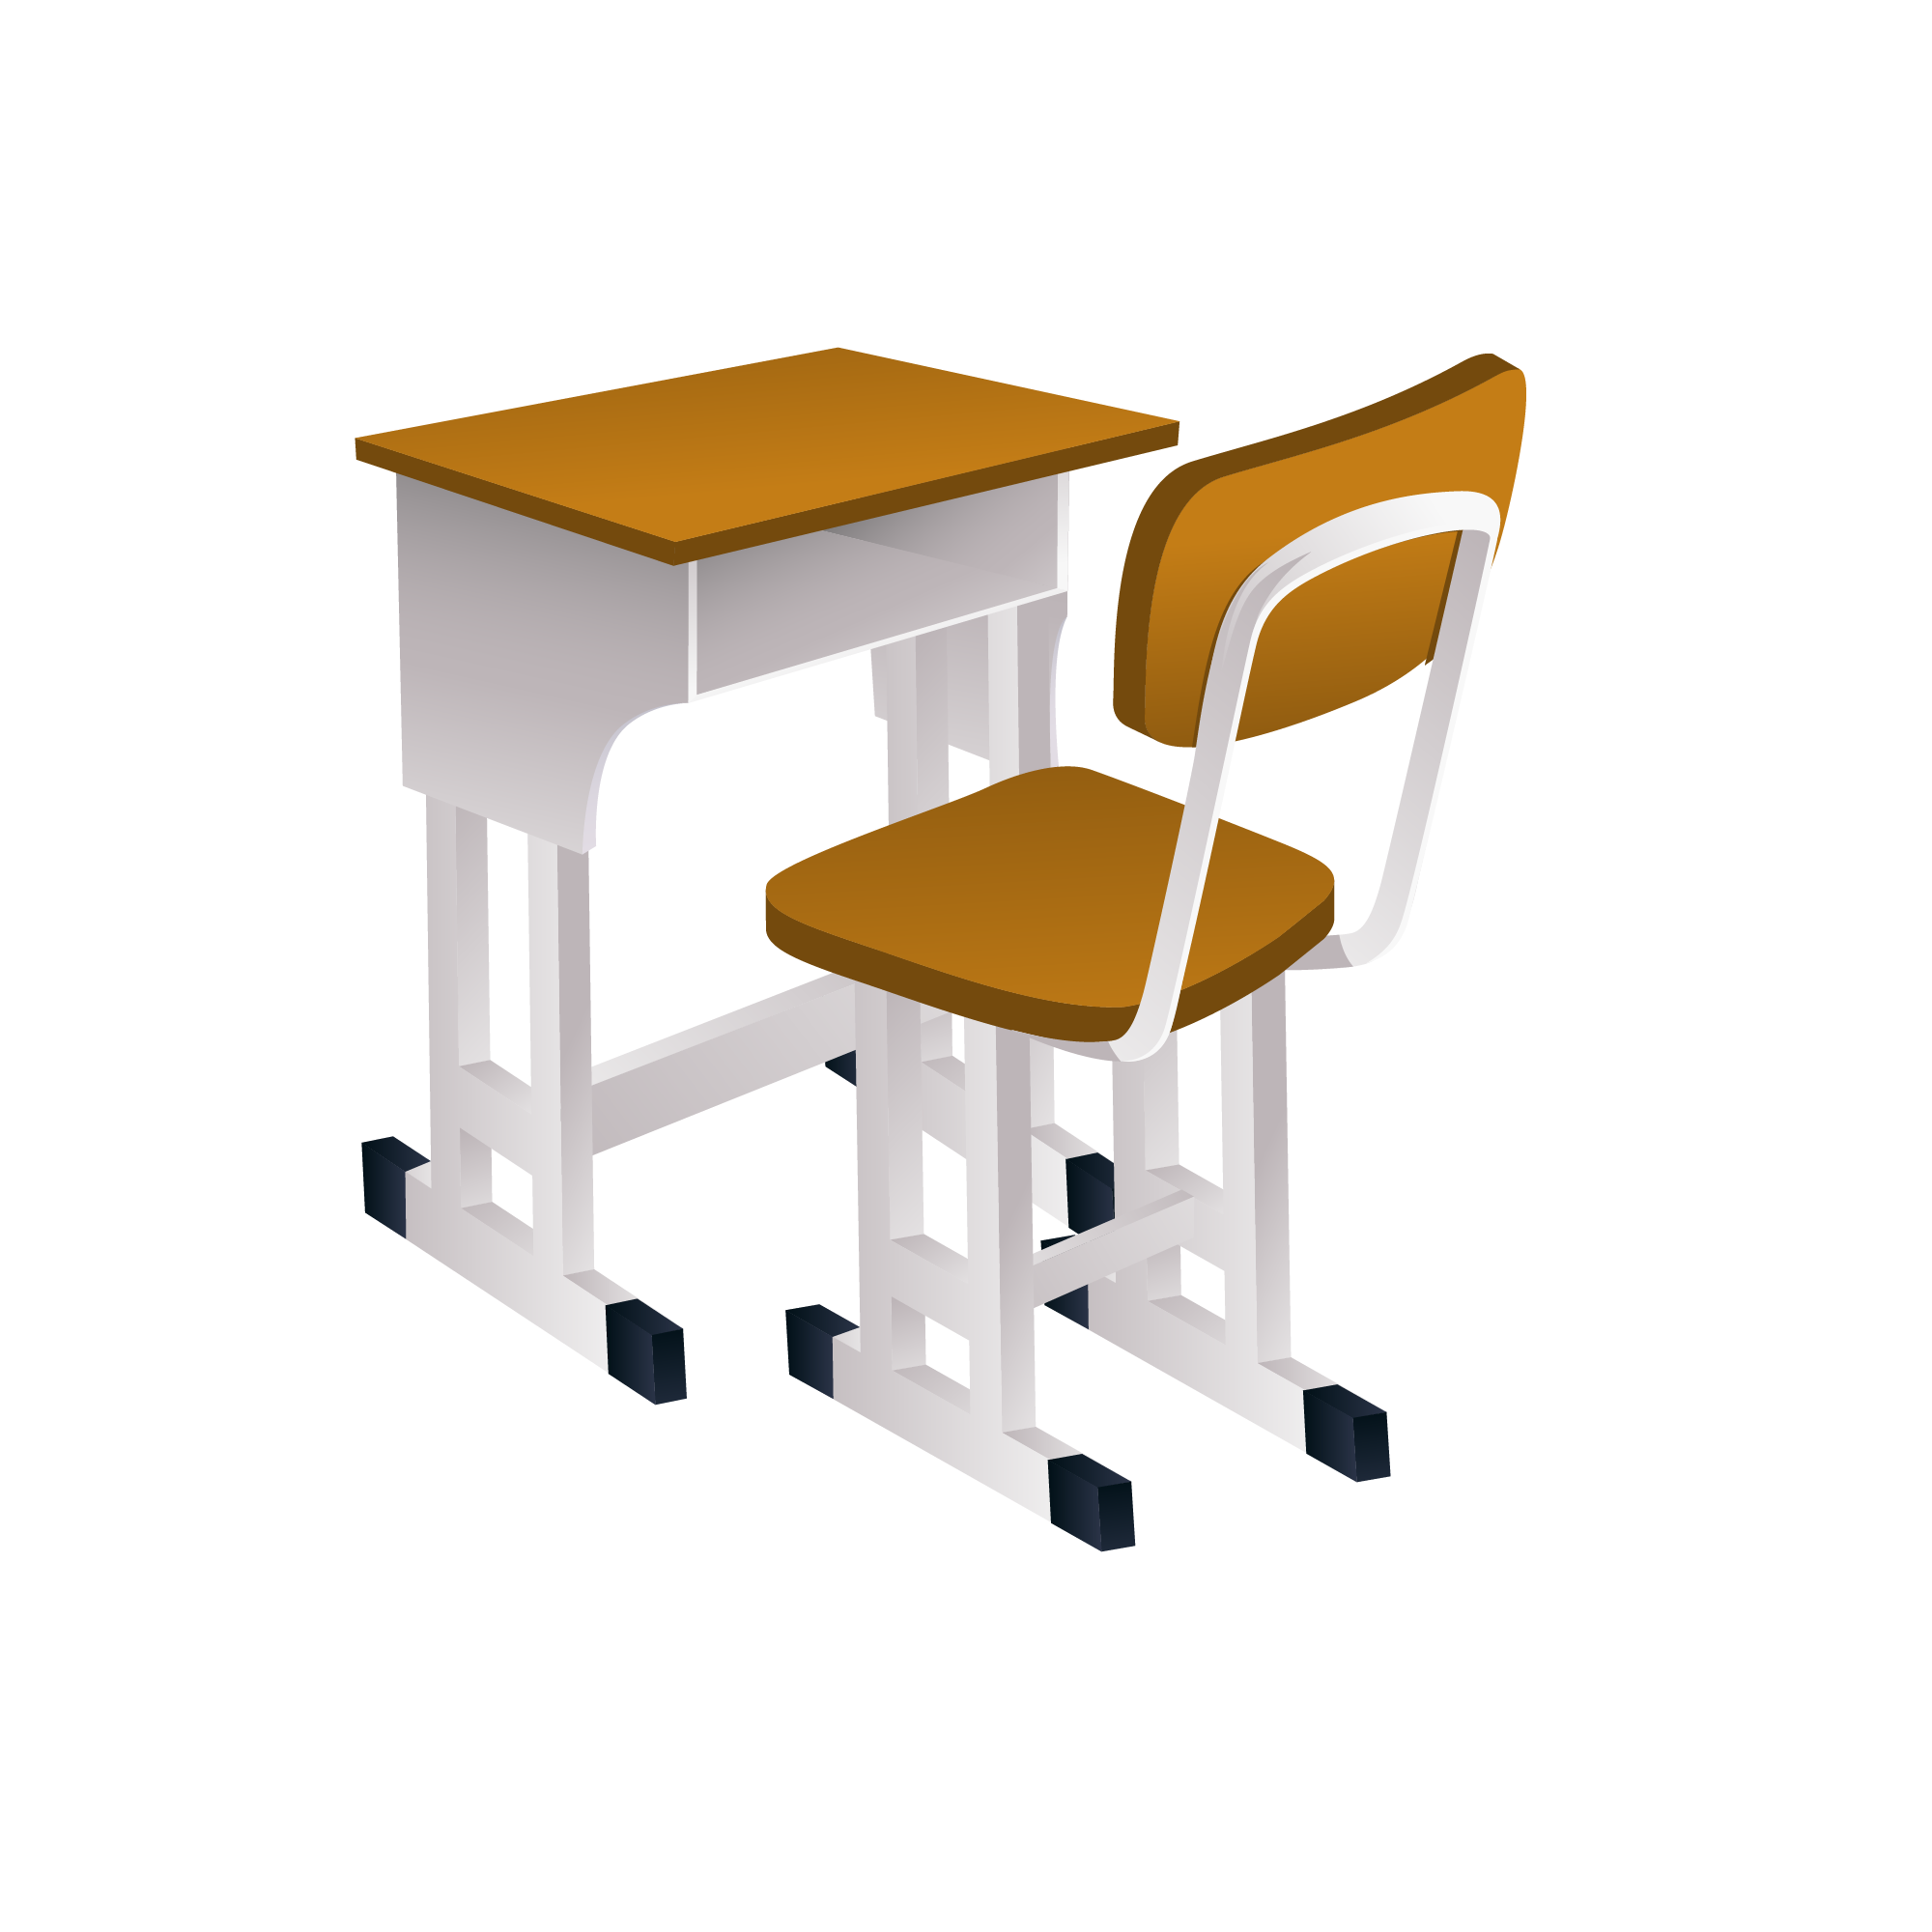 ead d a. Furniture clipart preschool